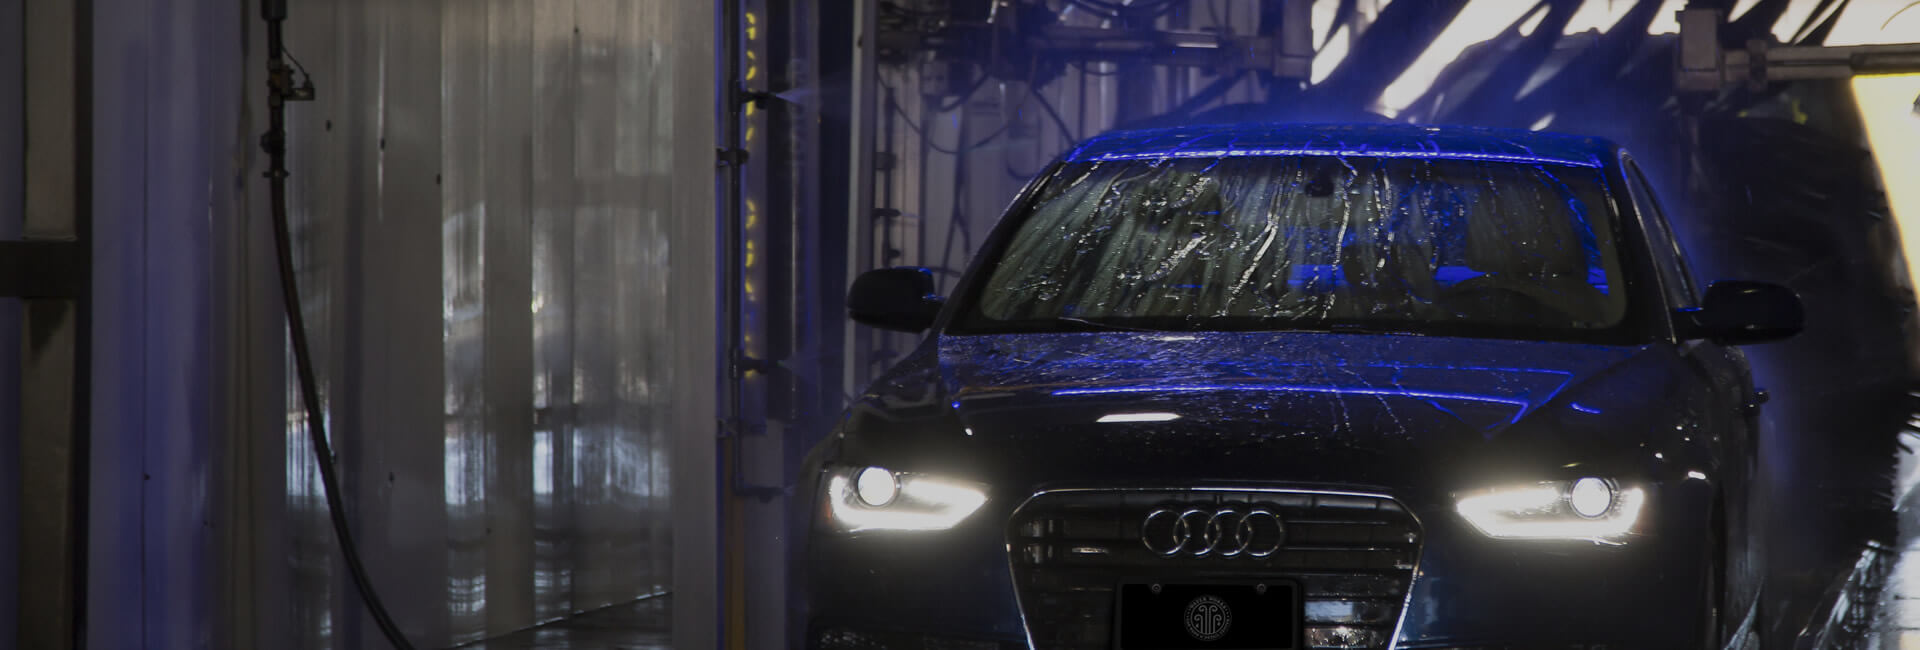 waterworks-audi-blue-1